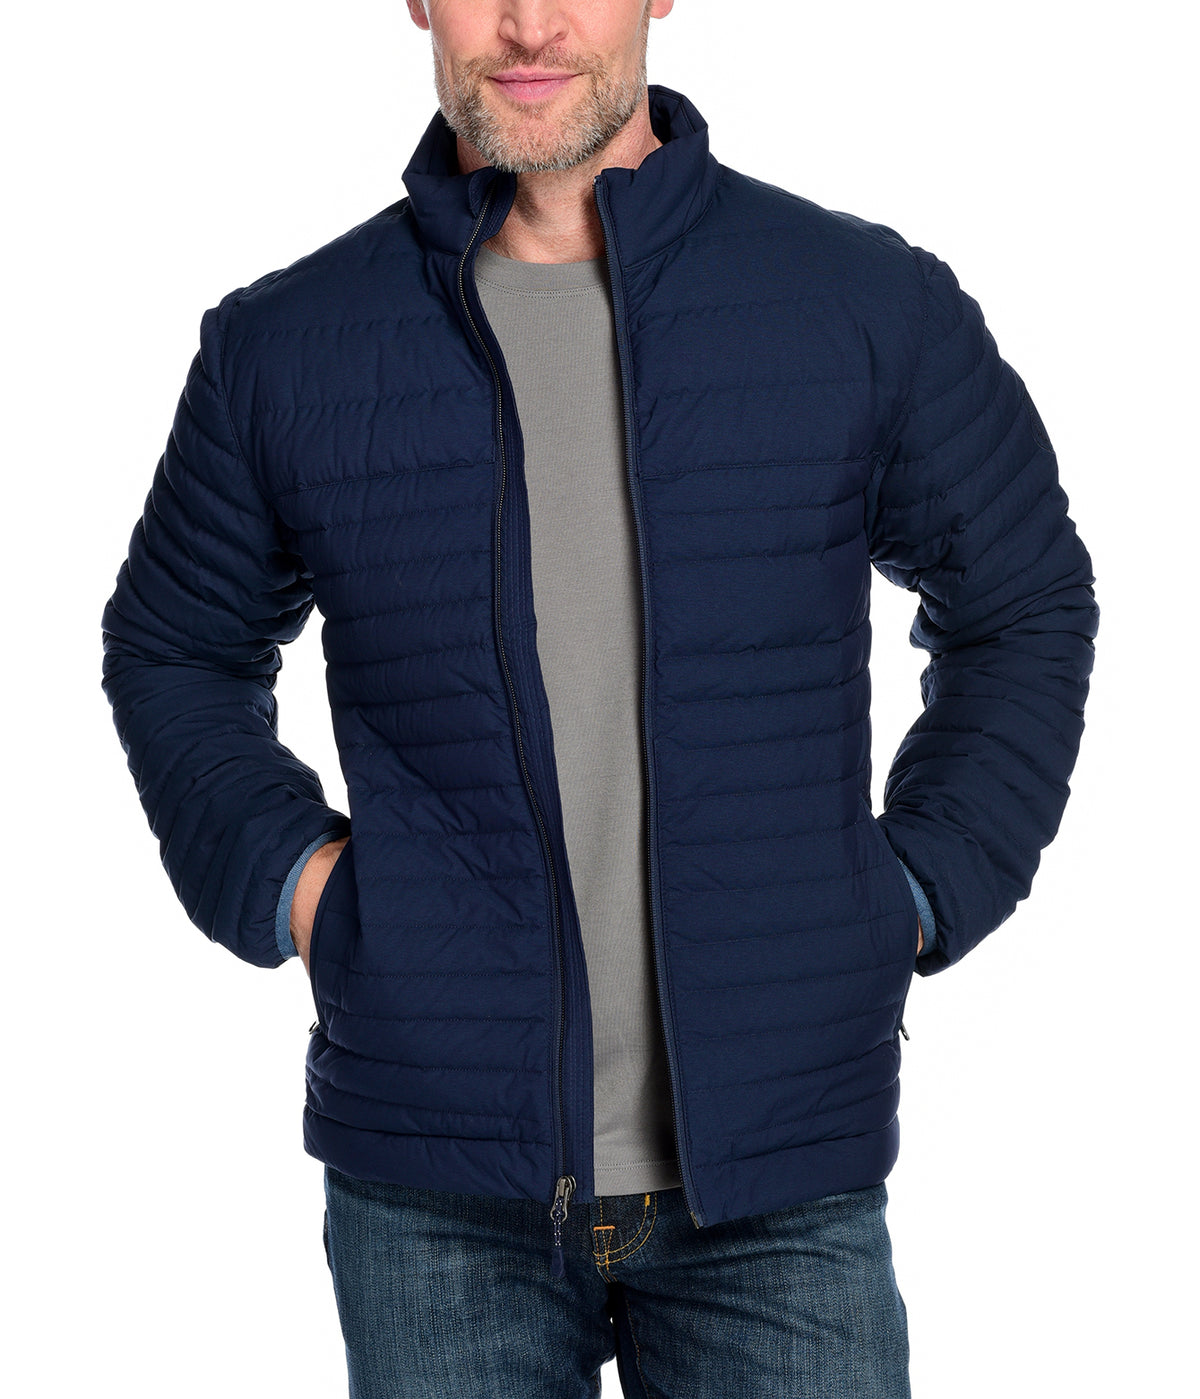 Men's Down Insulated Jacket the Passage Jacket by Fisher + Baker Navy